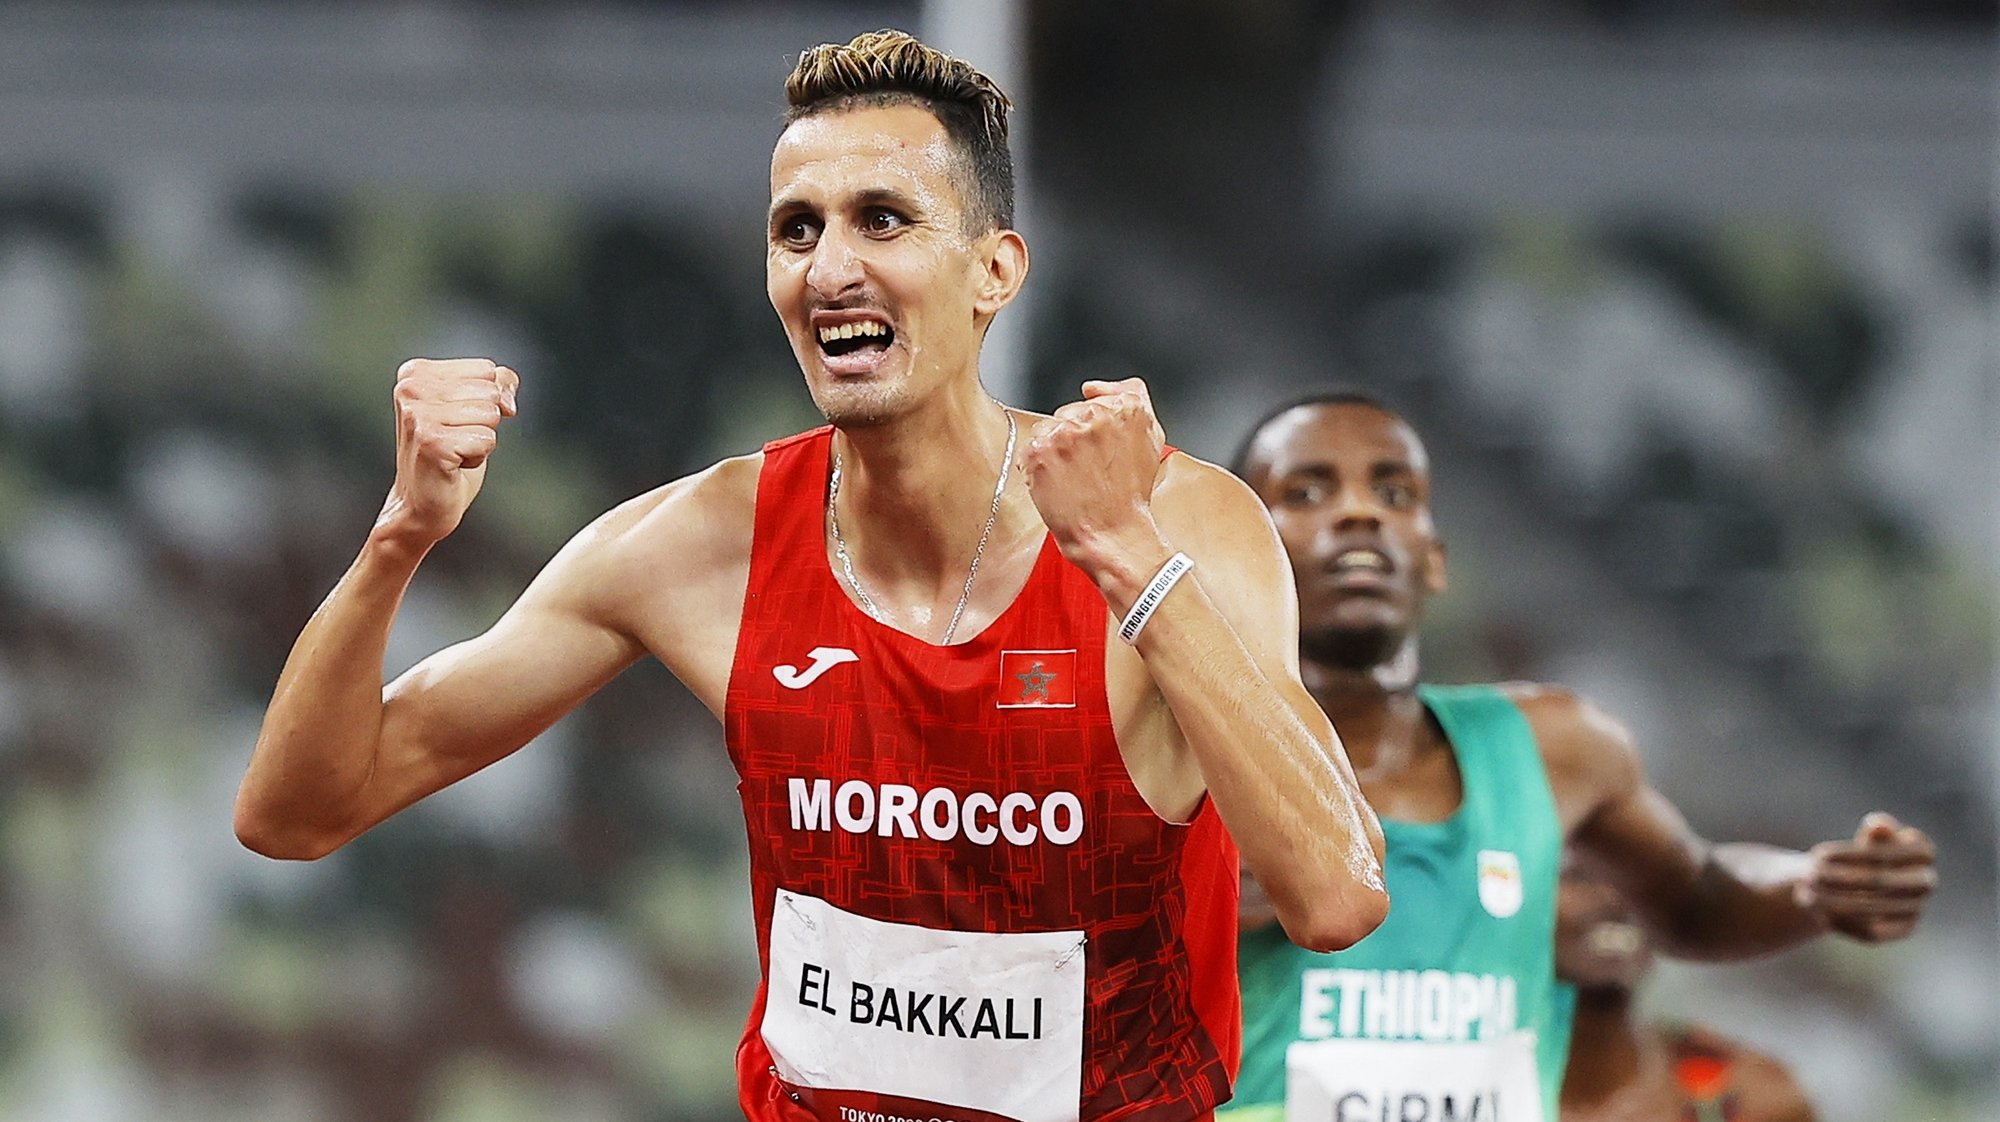 epa09388089 Soufiane El Bakkali of Morocco wins the Men's 3000m Steeplechase final at the Athletics events of the Tokyo 2020 Olympic Games at the Olympic Stadium in Tokyo, Japan, 02 August 2021. Lamecha Girma of Ethiopia placed second.  EPA/VALDRIN XHEMAJ